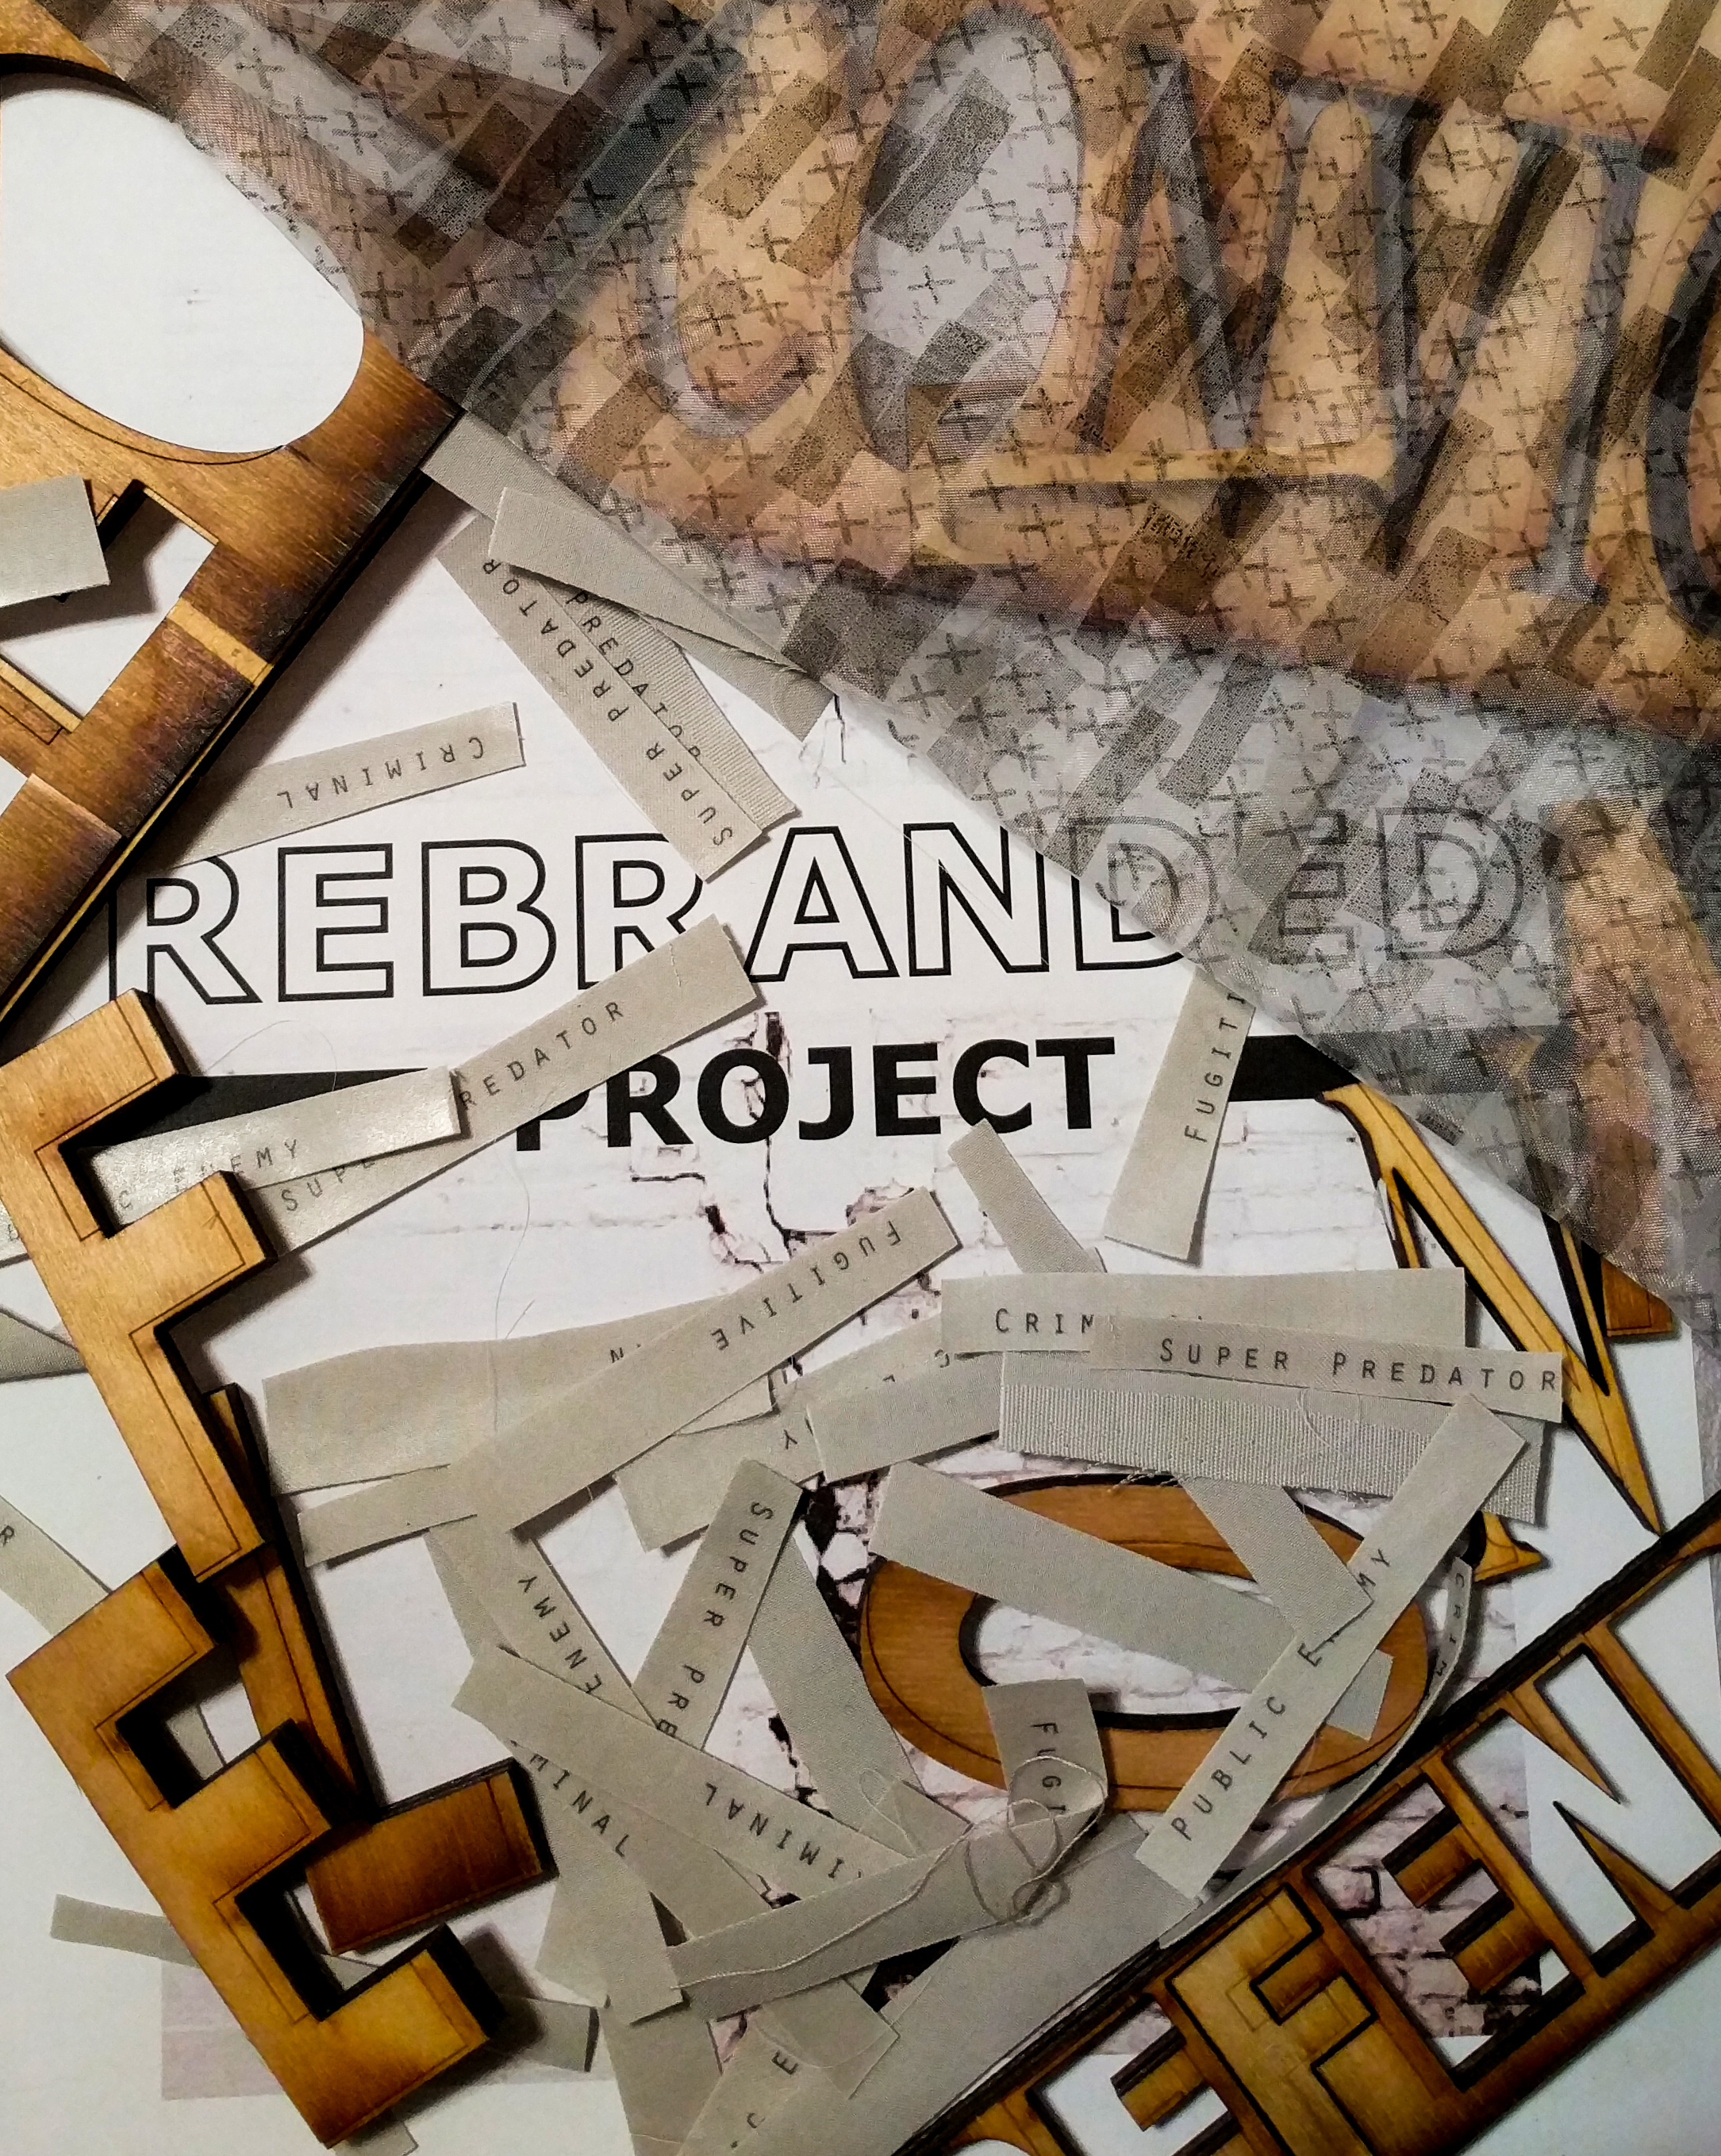 Rebranded project: the process - View the complete Rebranded Project process book now.